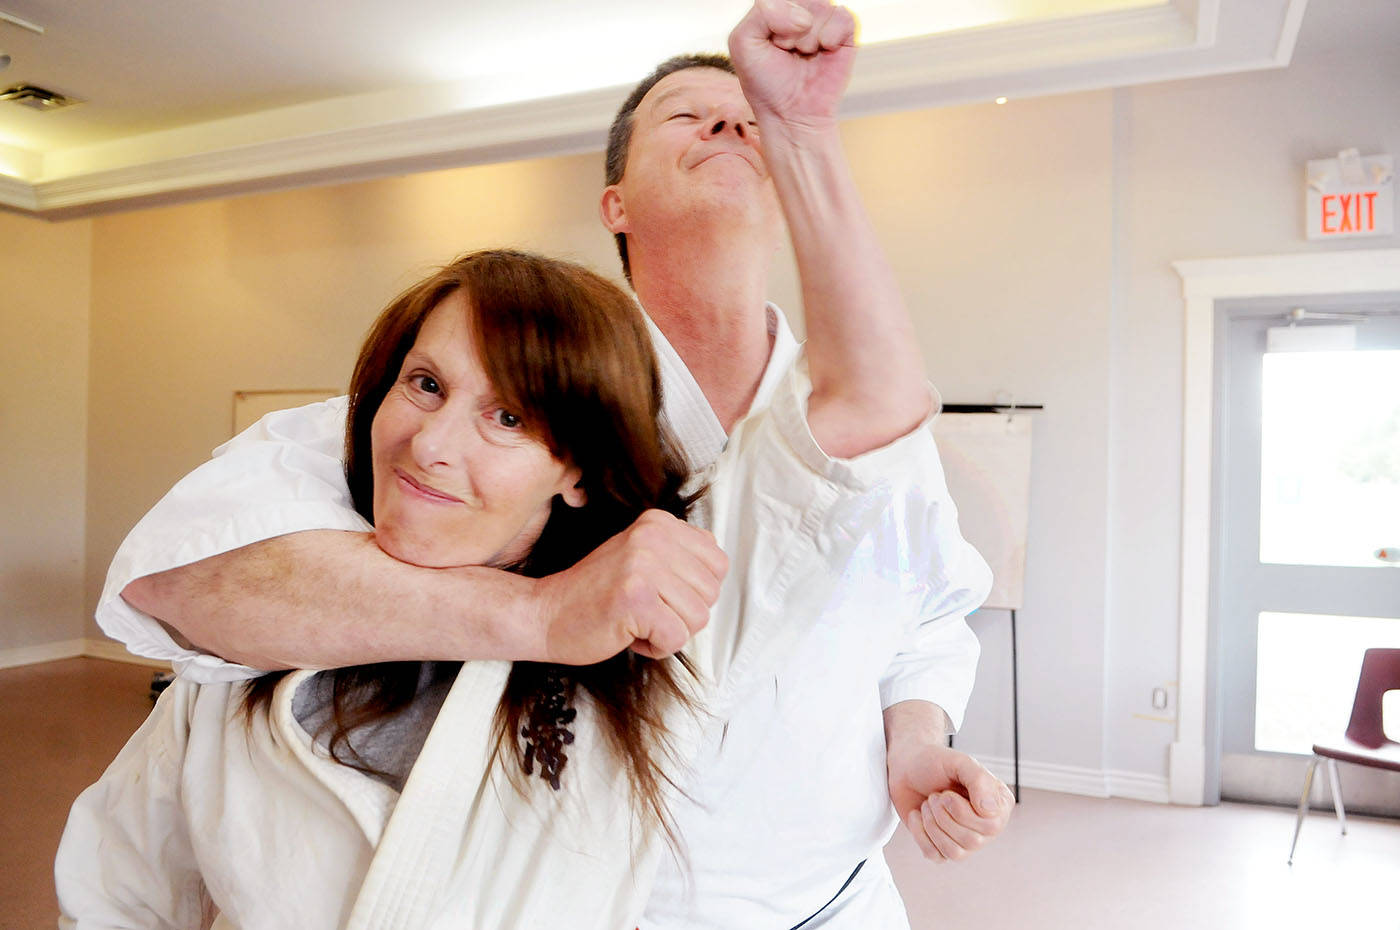 Karate instructor aims to empower women through self defence